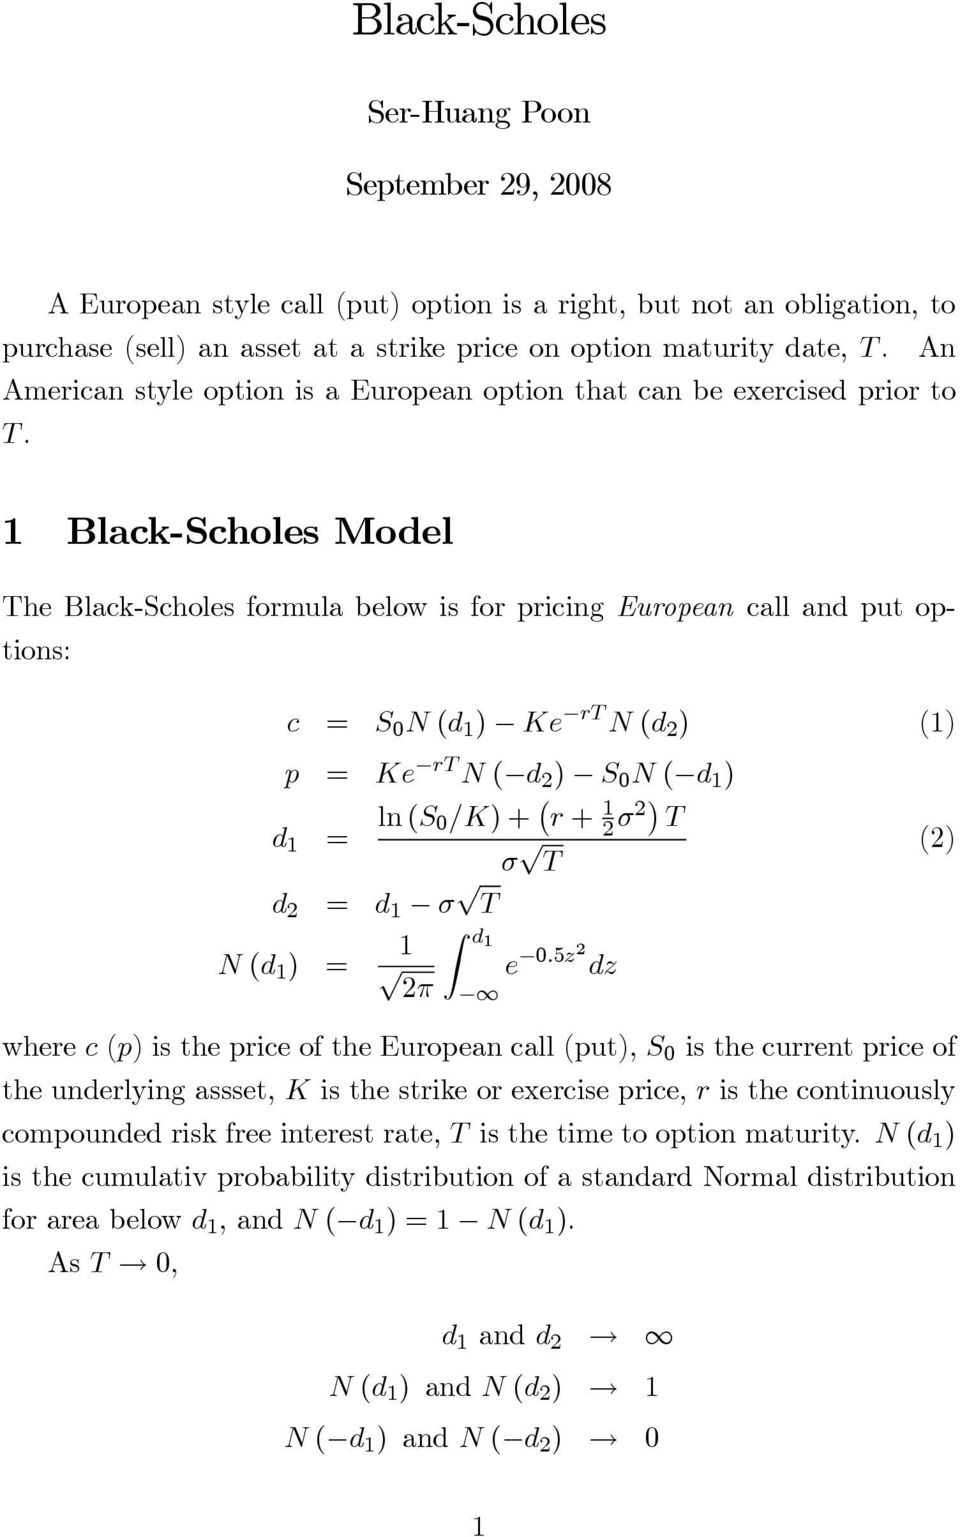 1 Black-Scholes Model The Black-Scholes formula below is for pricing European call and put options: c = S 0 N (d 1 ) Ke rt N (d 2 ) (1) p = Ke rt N ( d 2 ) S 0 N ( d 1 ) d 1 = ln (S 0/K)+ r + 1 2 σ2